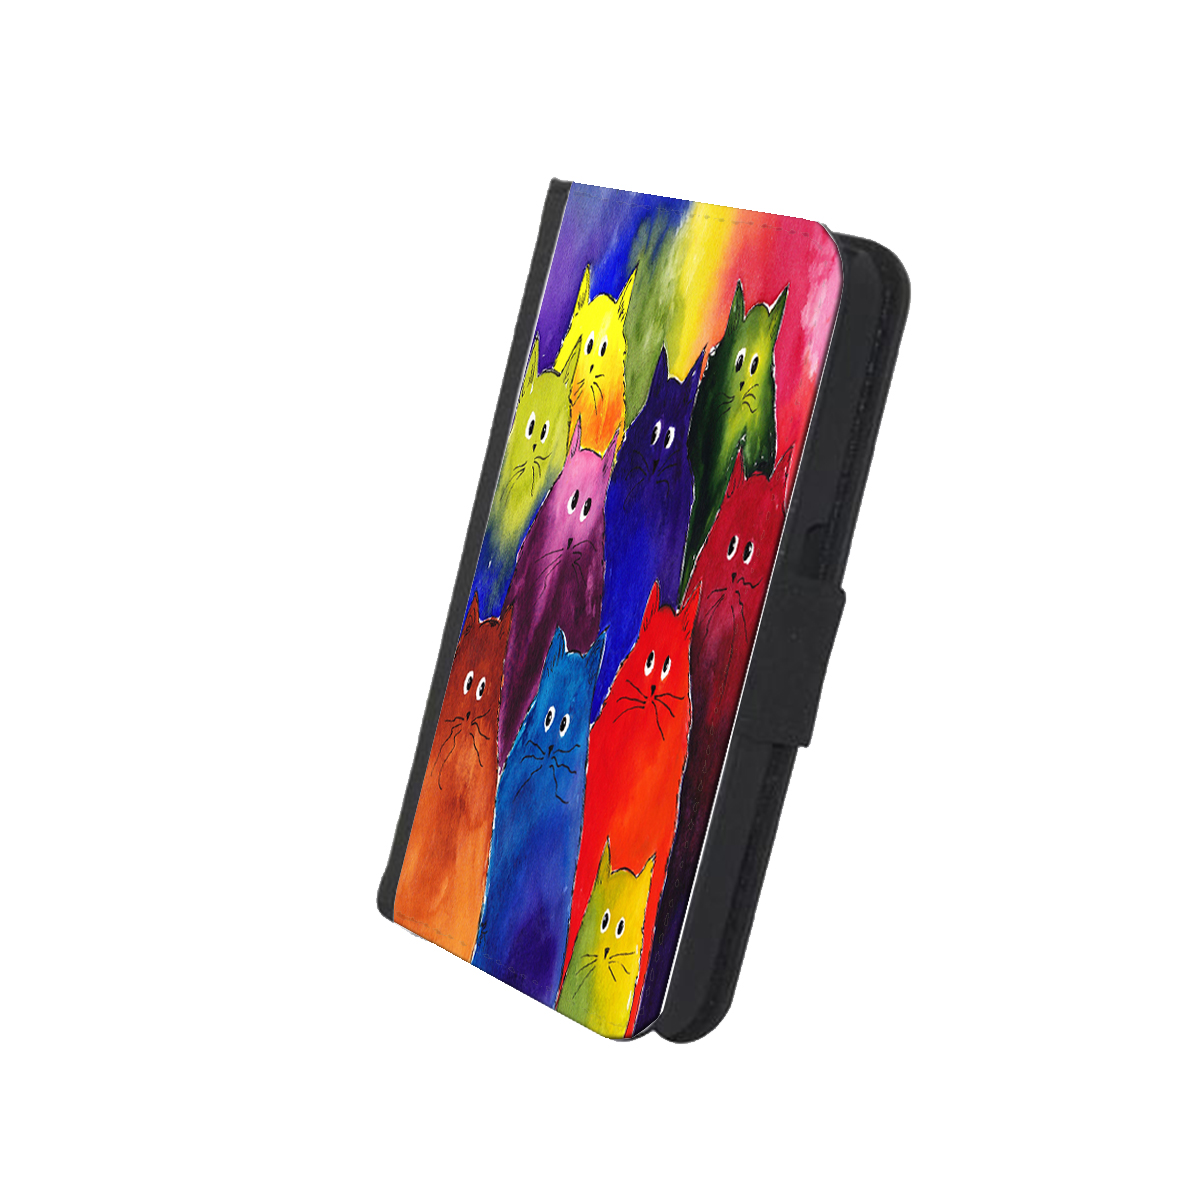 KuzmarK™ Samsung Galaxy S6 Wallet Case - Very Colorful Two-Toned Silly Maine Coon Kitties Rainbow Background Art by Denise Every